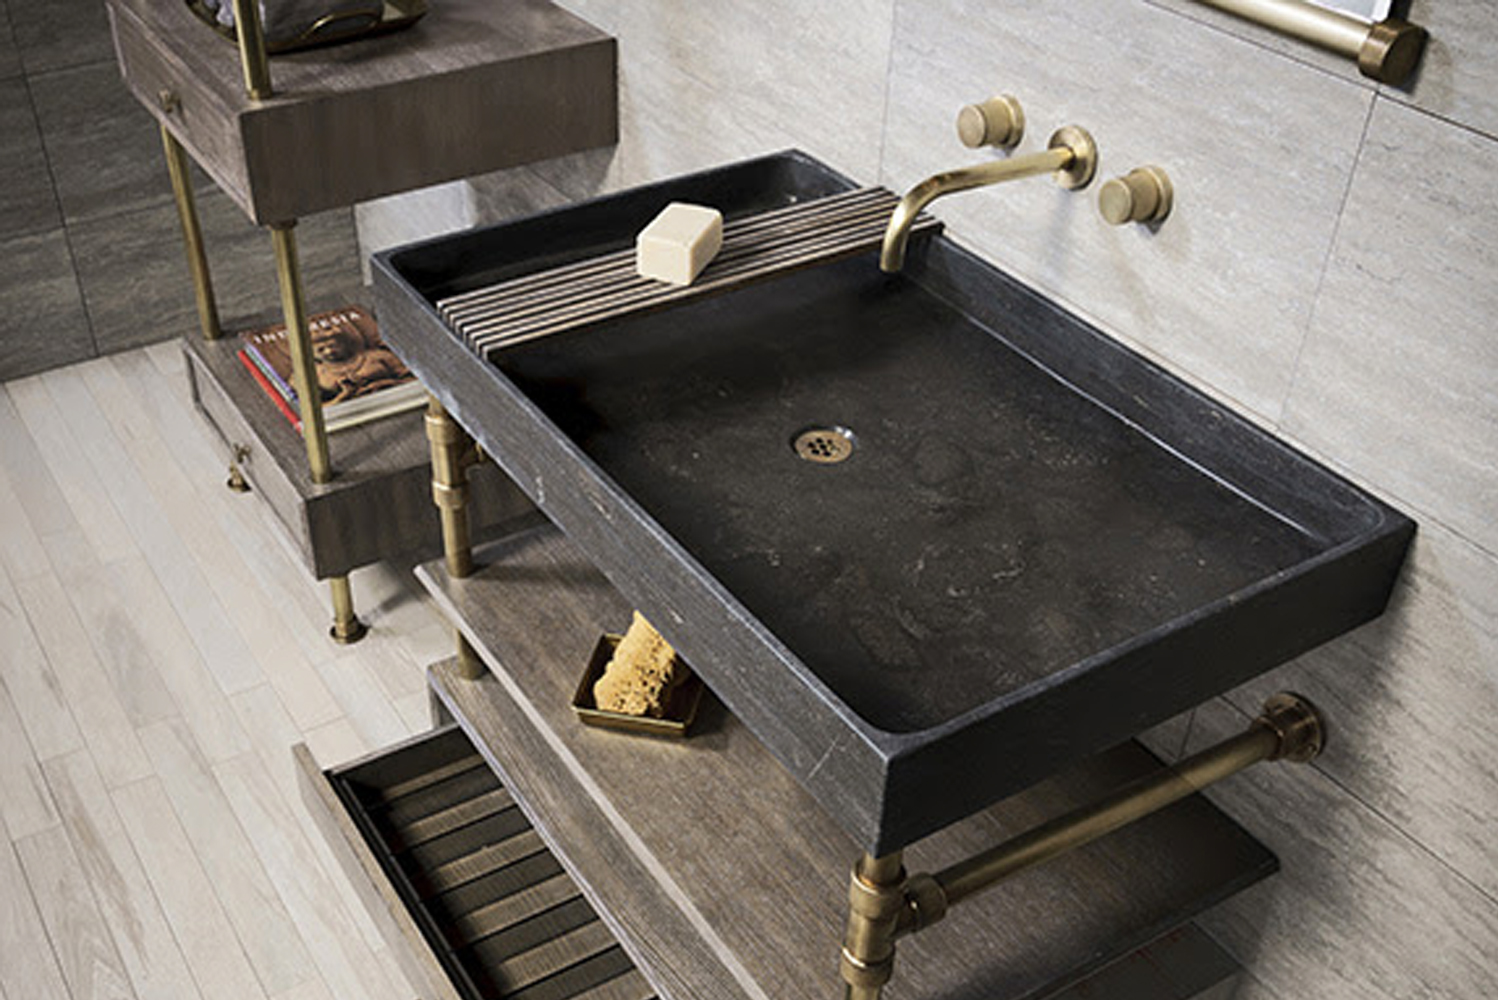 . In aged brass or polished nickel, the legs and fittings add a new component — metal — that works with Stone Forest's natural sinks.